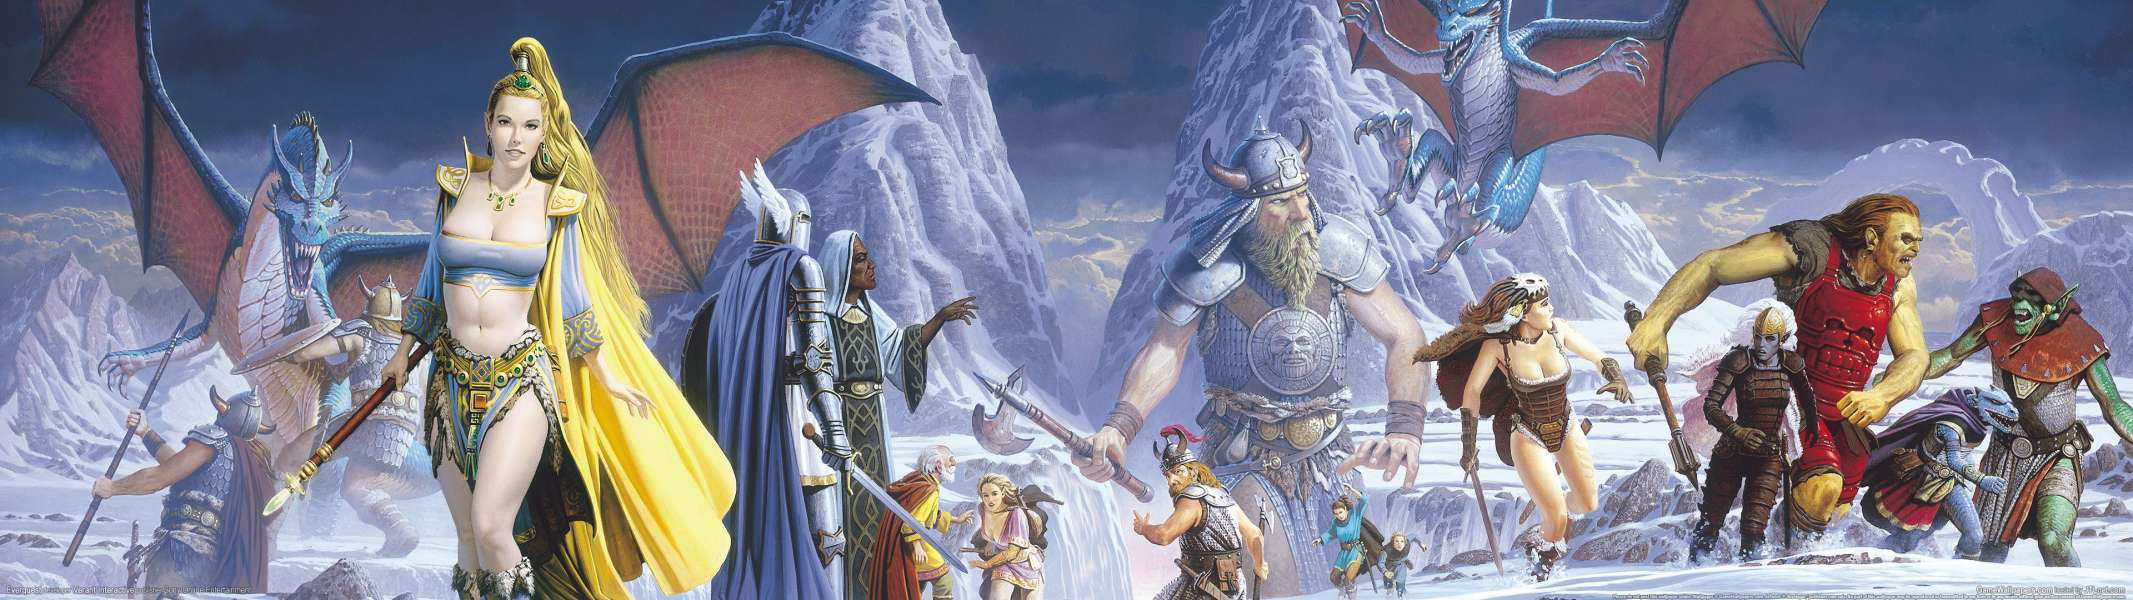 Everquest dual screen wallpaper or background